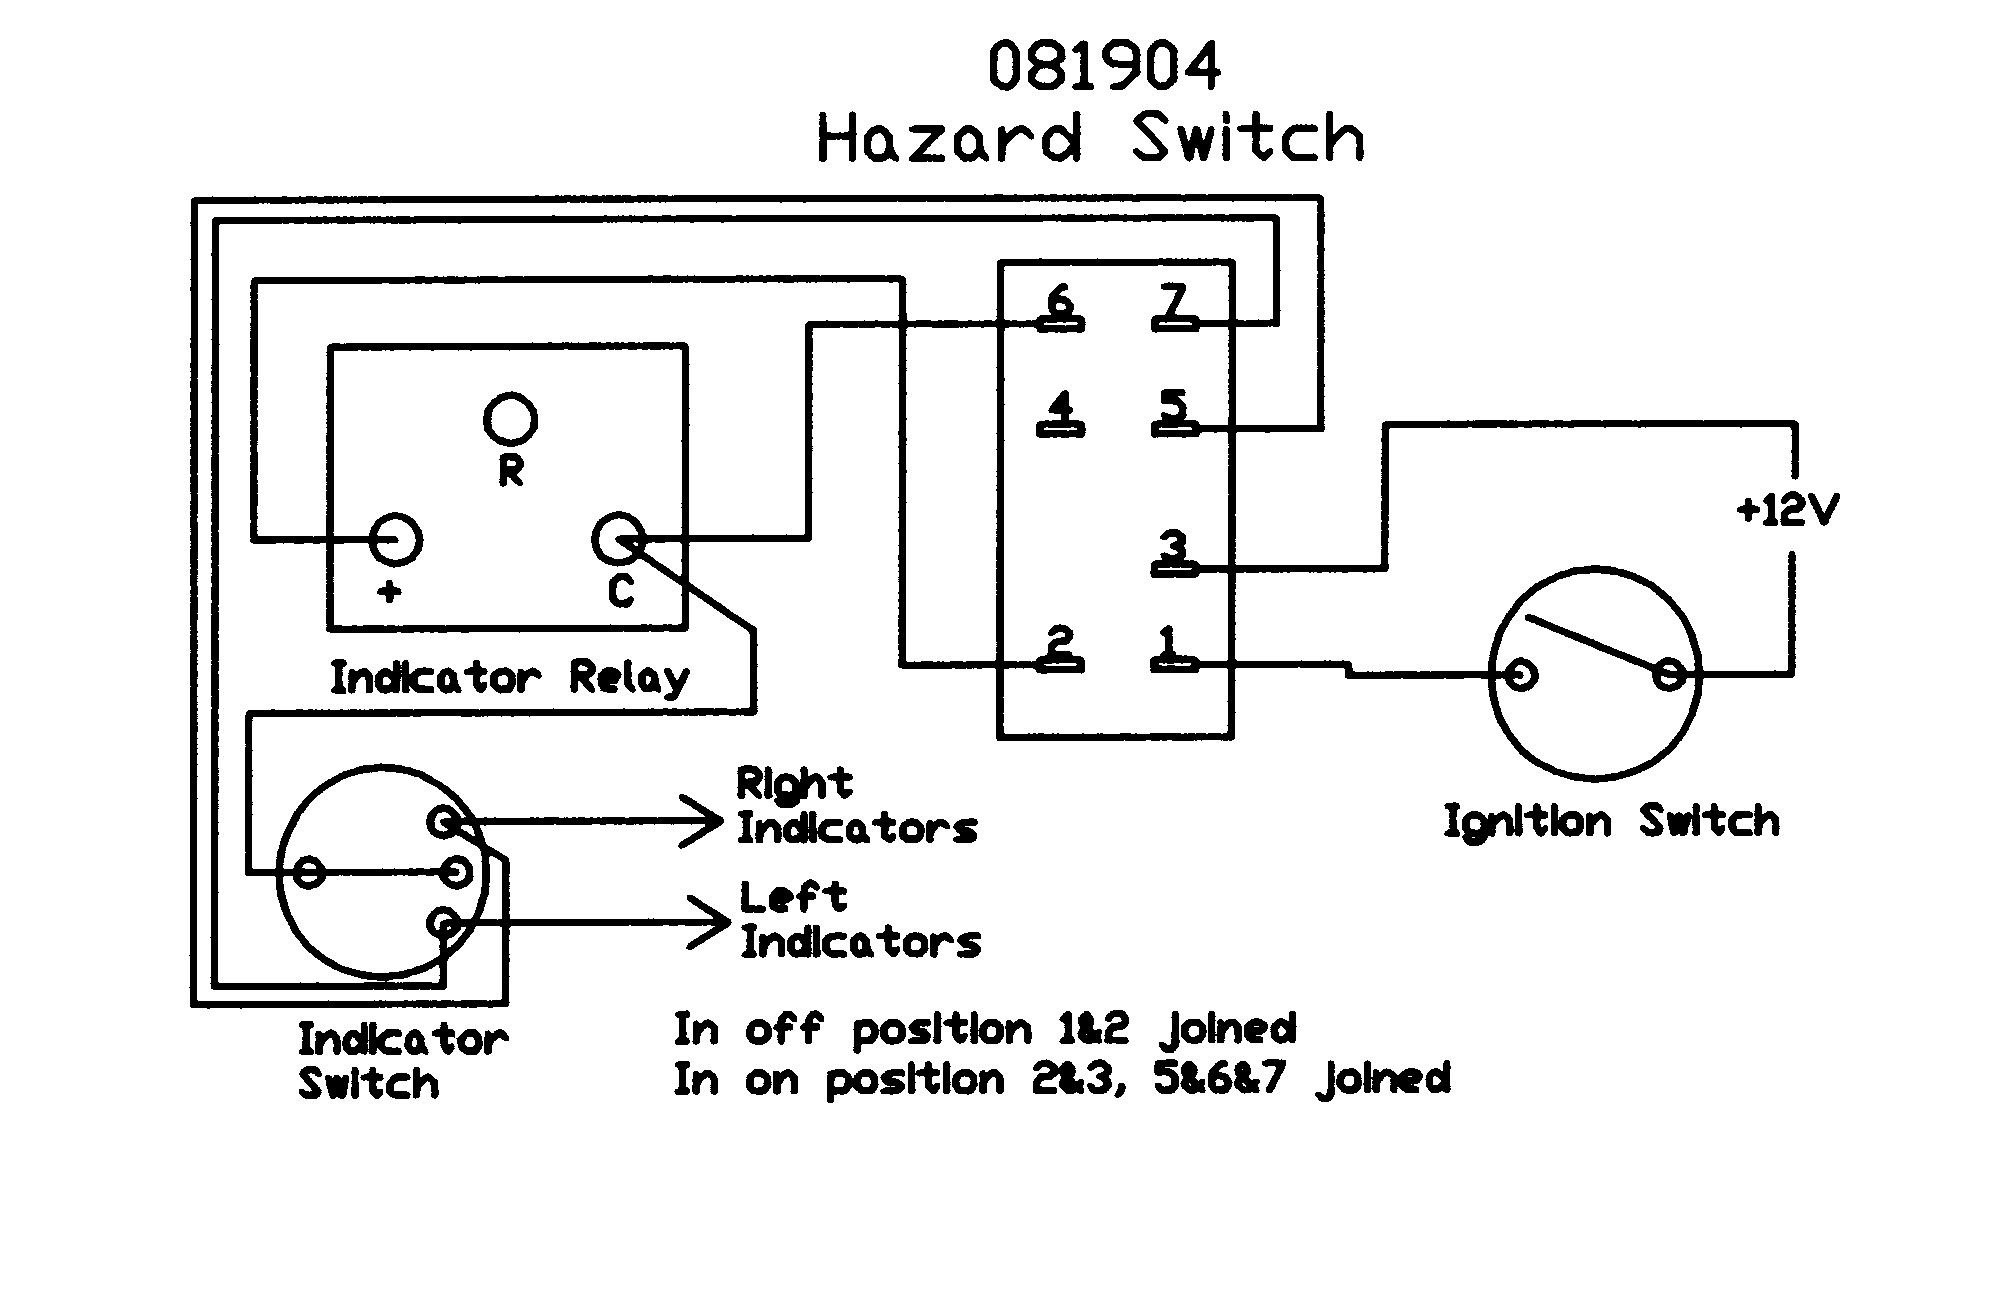 Acura Integra Engine Diagram 1998 Dodge Dakota Overdrive Switch Key Wiring 98 Diagrams Lucas Ignition Of